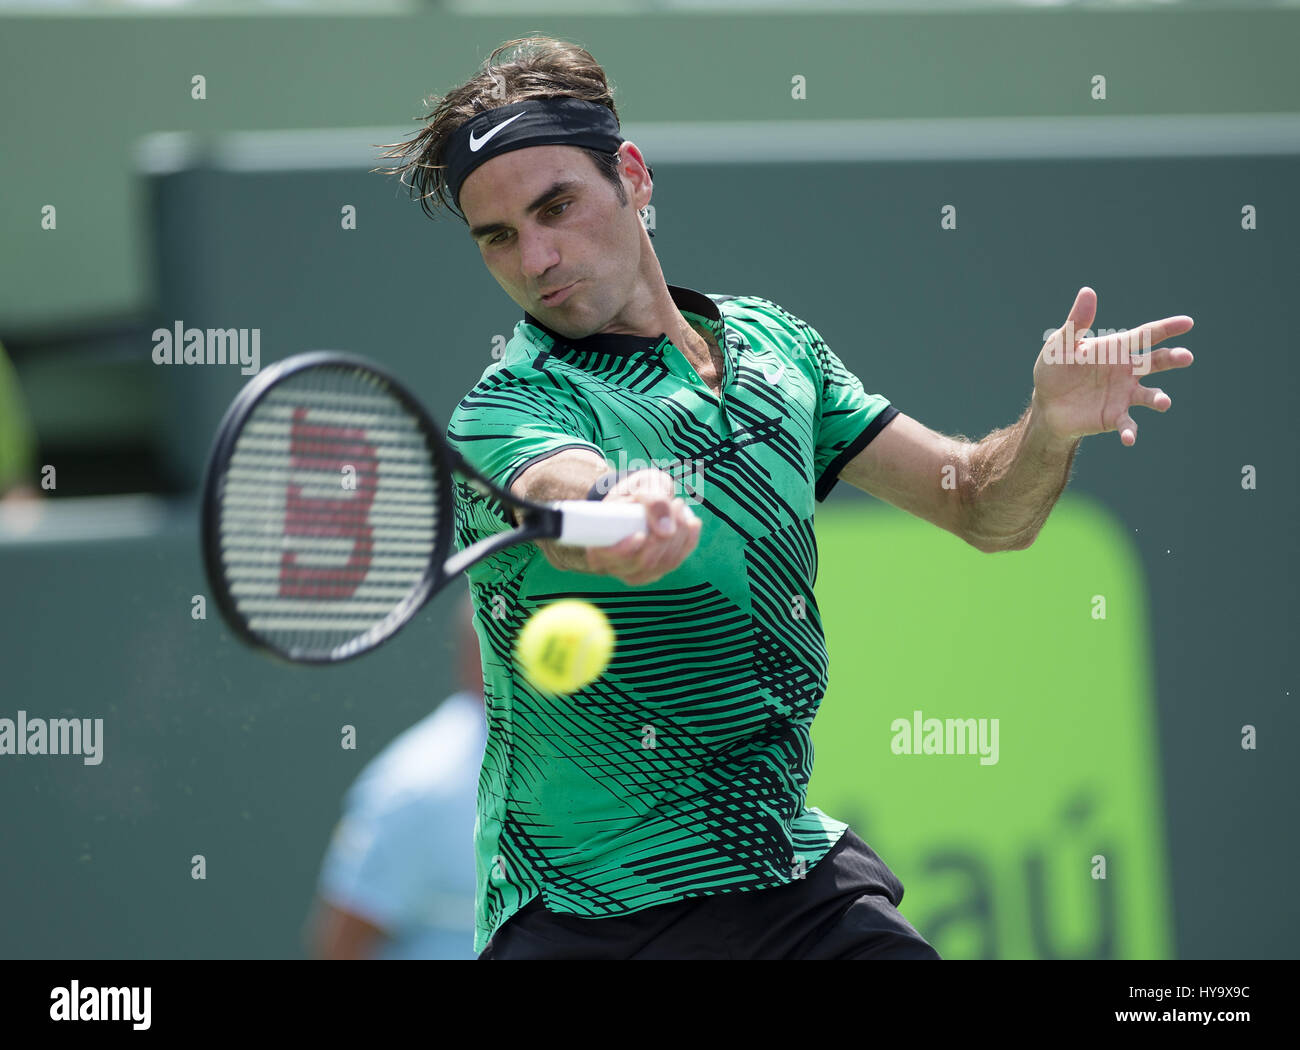 April 2, 2017 - Miami, FL, United States - BISCAYNE, FL - APRIL 02: Roger Federer (SUI) in action here, plays Rafael Nadal (ESP) at the  2017 Miami Open tennis match on April 2, 2017, at the Tennis Center at Crandon Park in Key Biscayne, FL. (Credit Image: © Andrew Patron via ZUMA Wire) Stock Photo